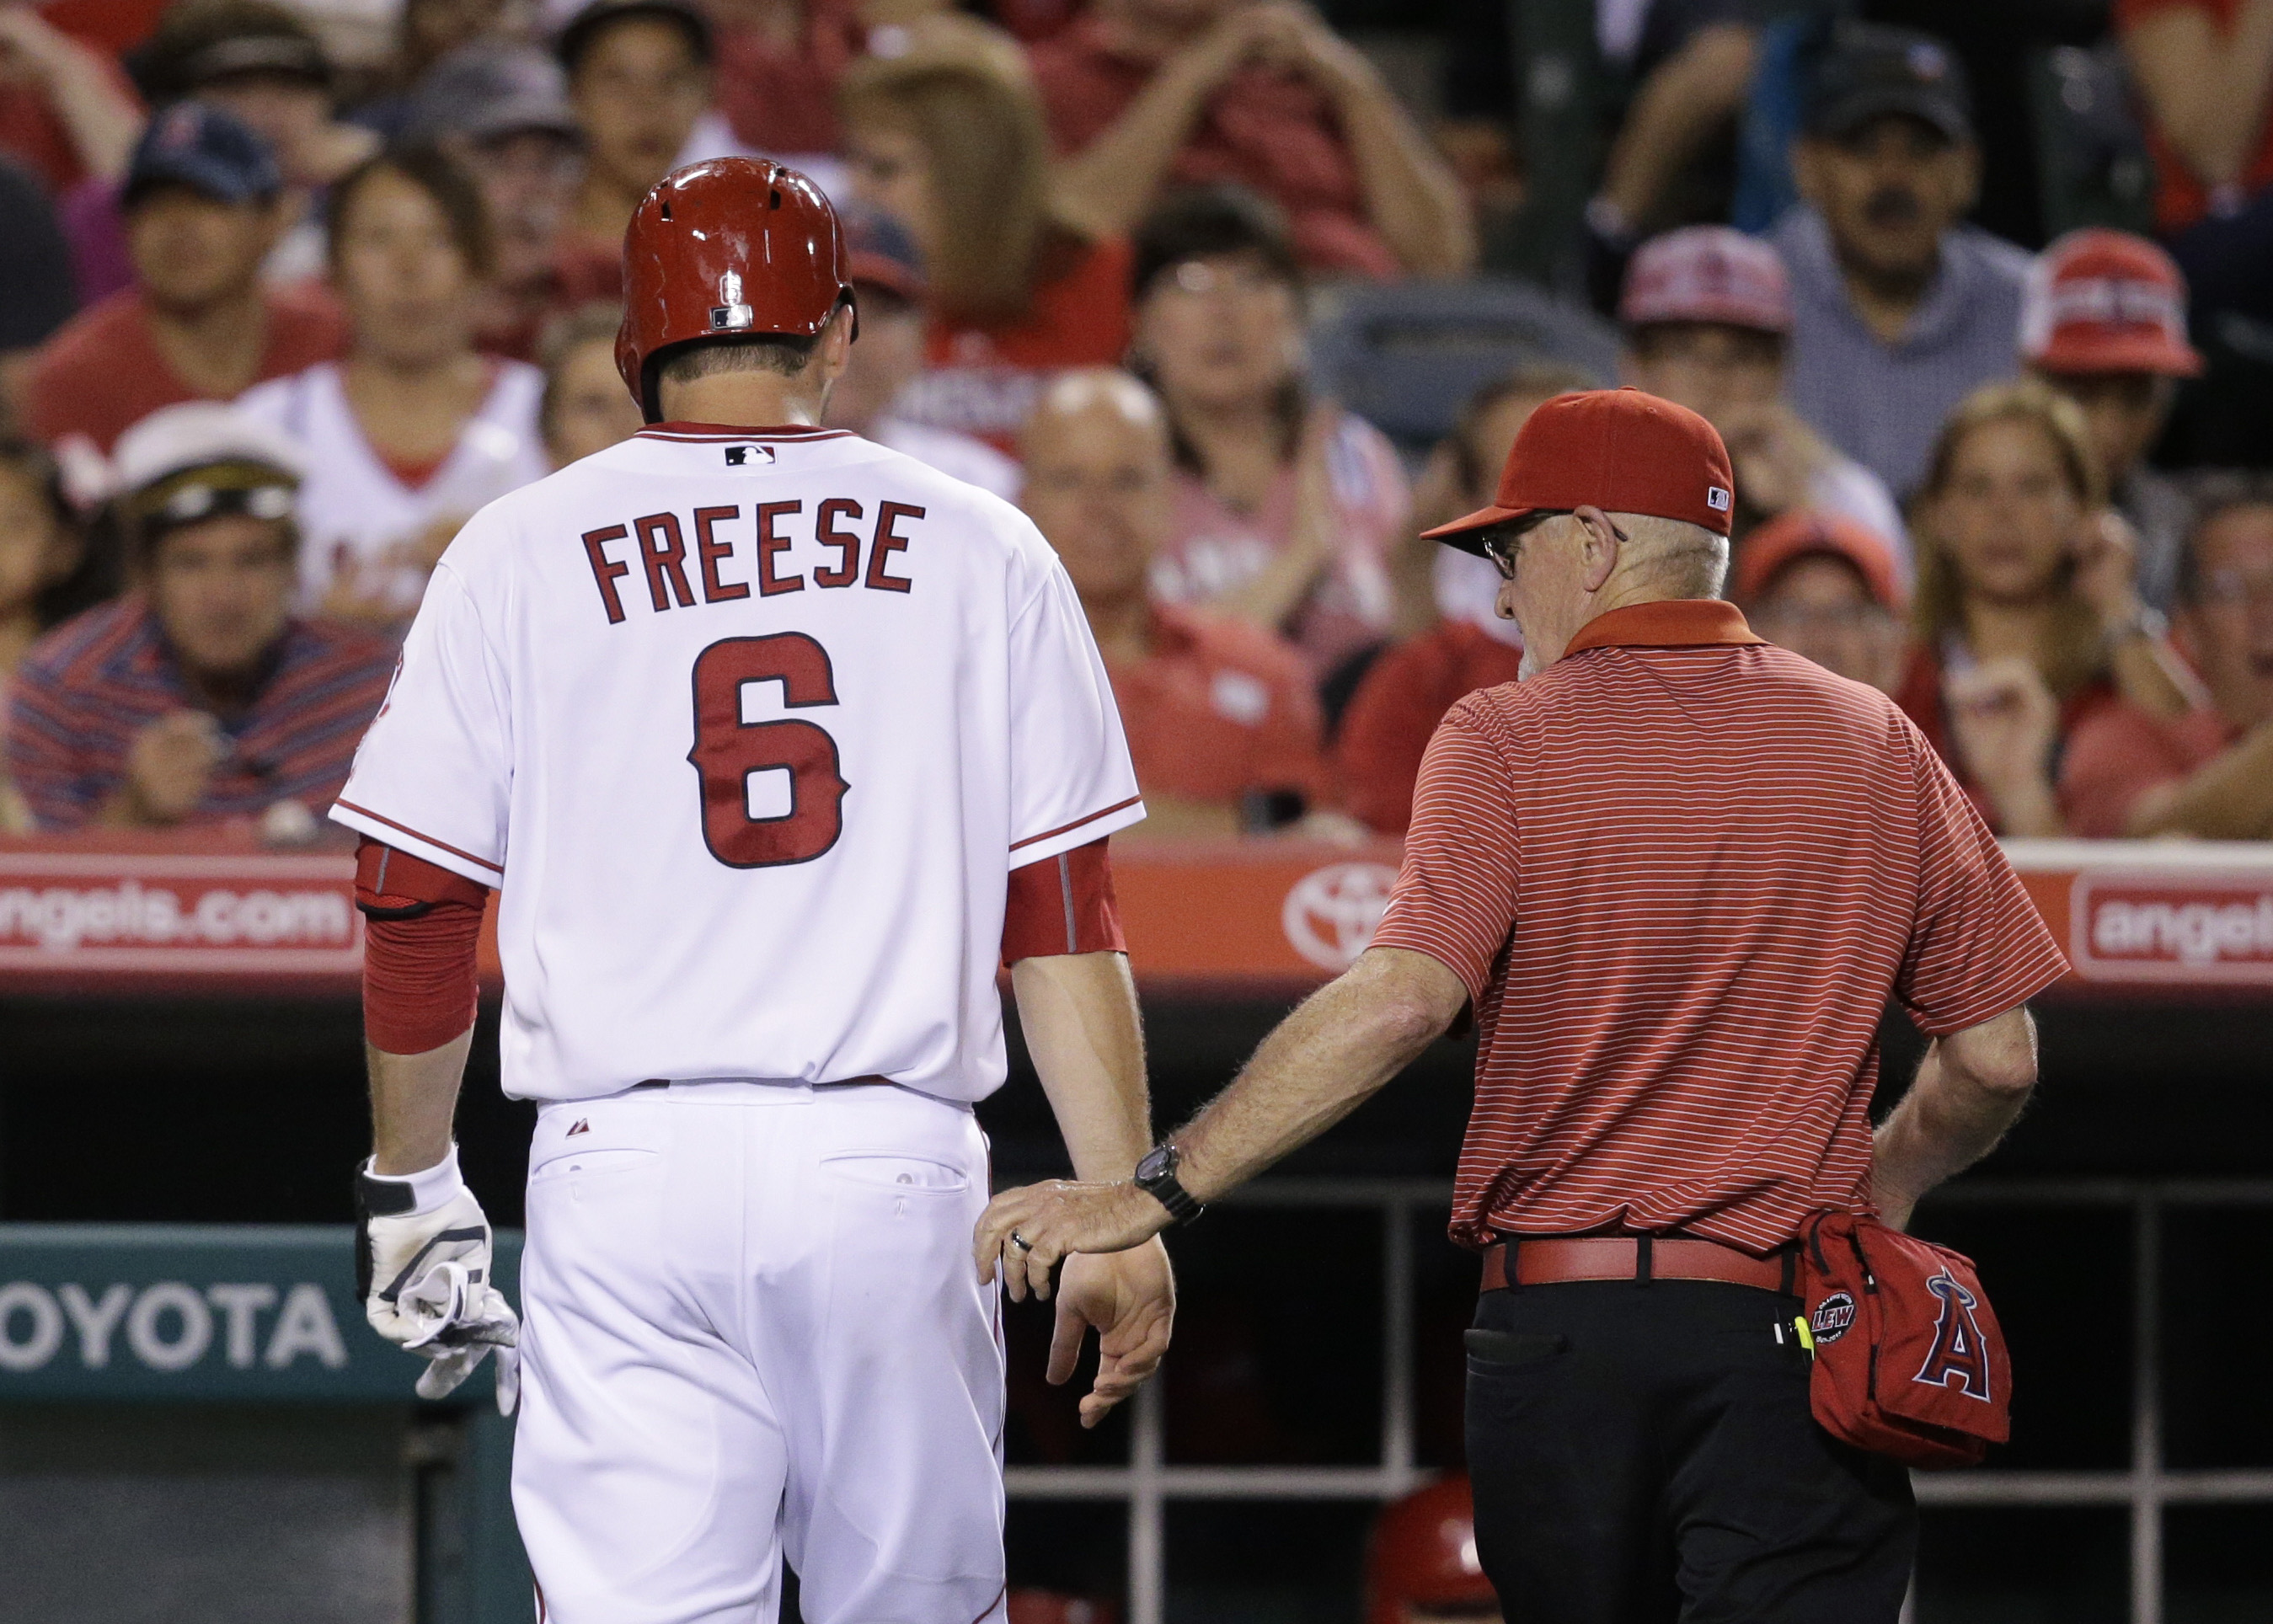 Los Angeles Angels' David Freese, left, walks off the field with a trainer after he was hit by a pitch during the fourth inning of a baseball game against the Minnesota Twins, Wednesday, July 22, 2015, in Anaheim, Calif. (AP Photo/Jae C. Hong)